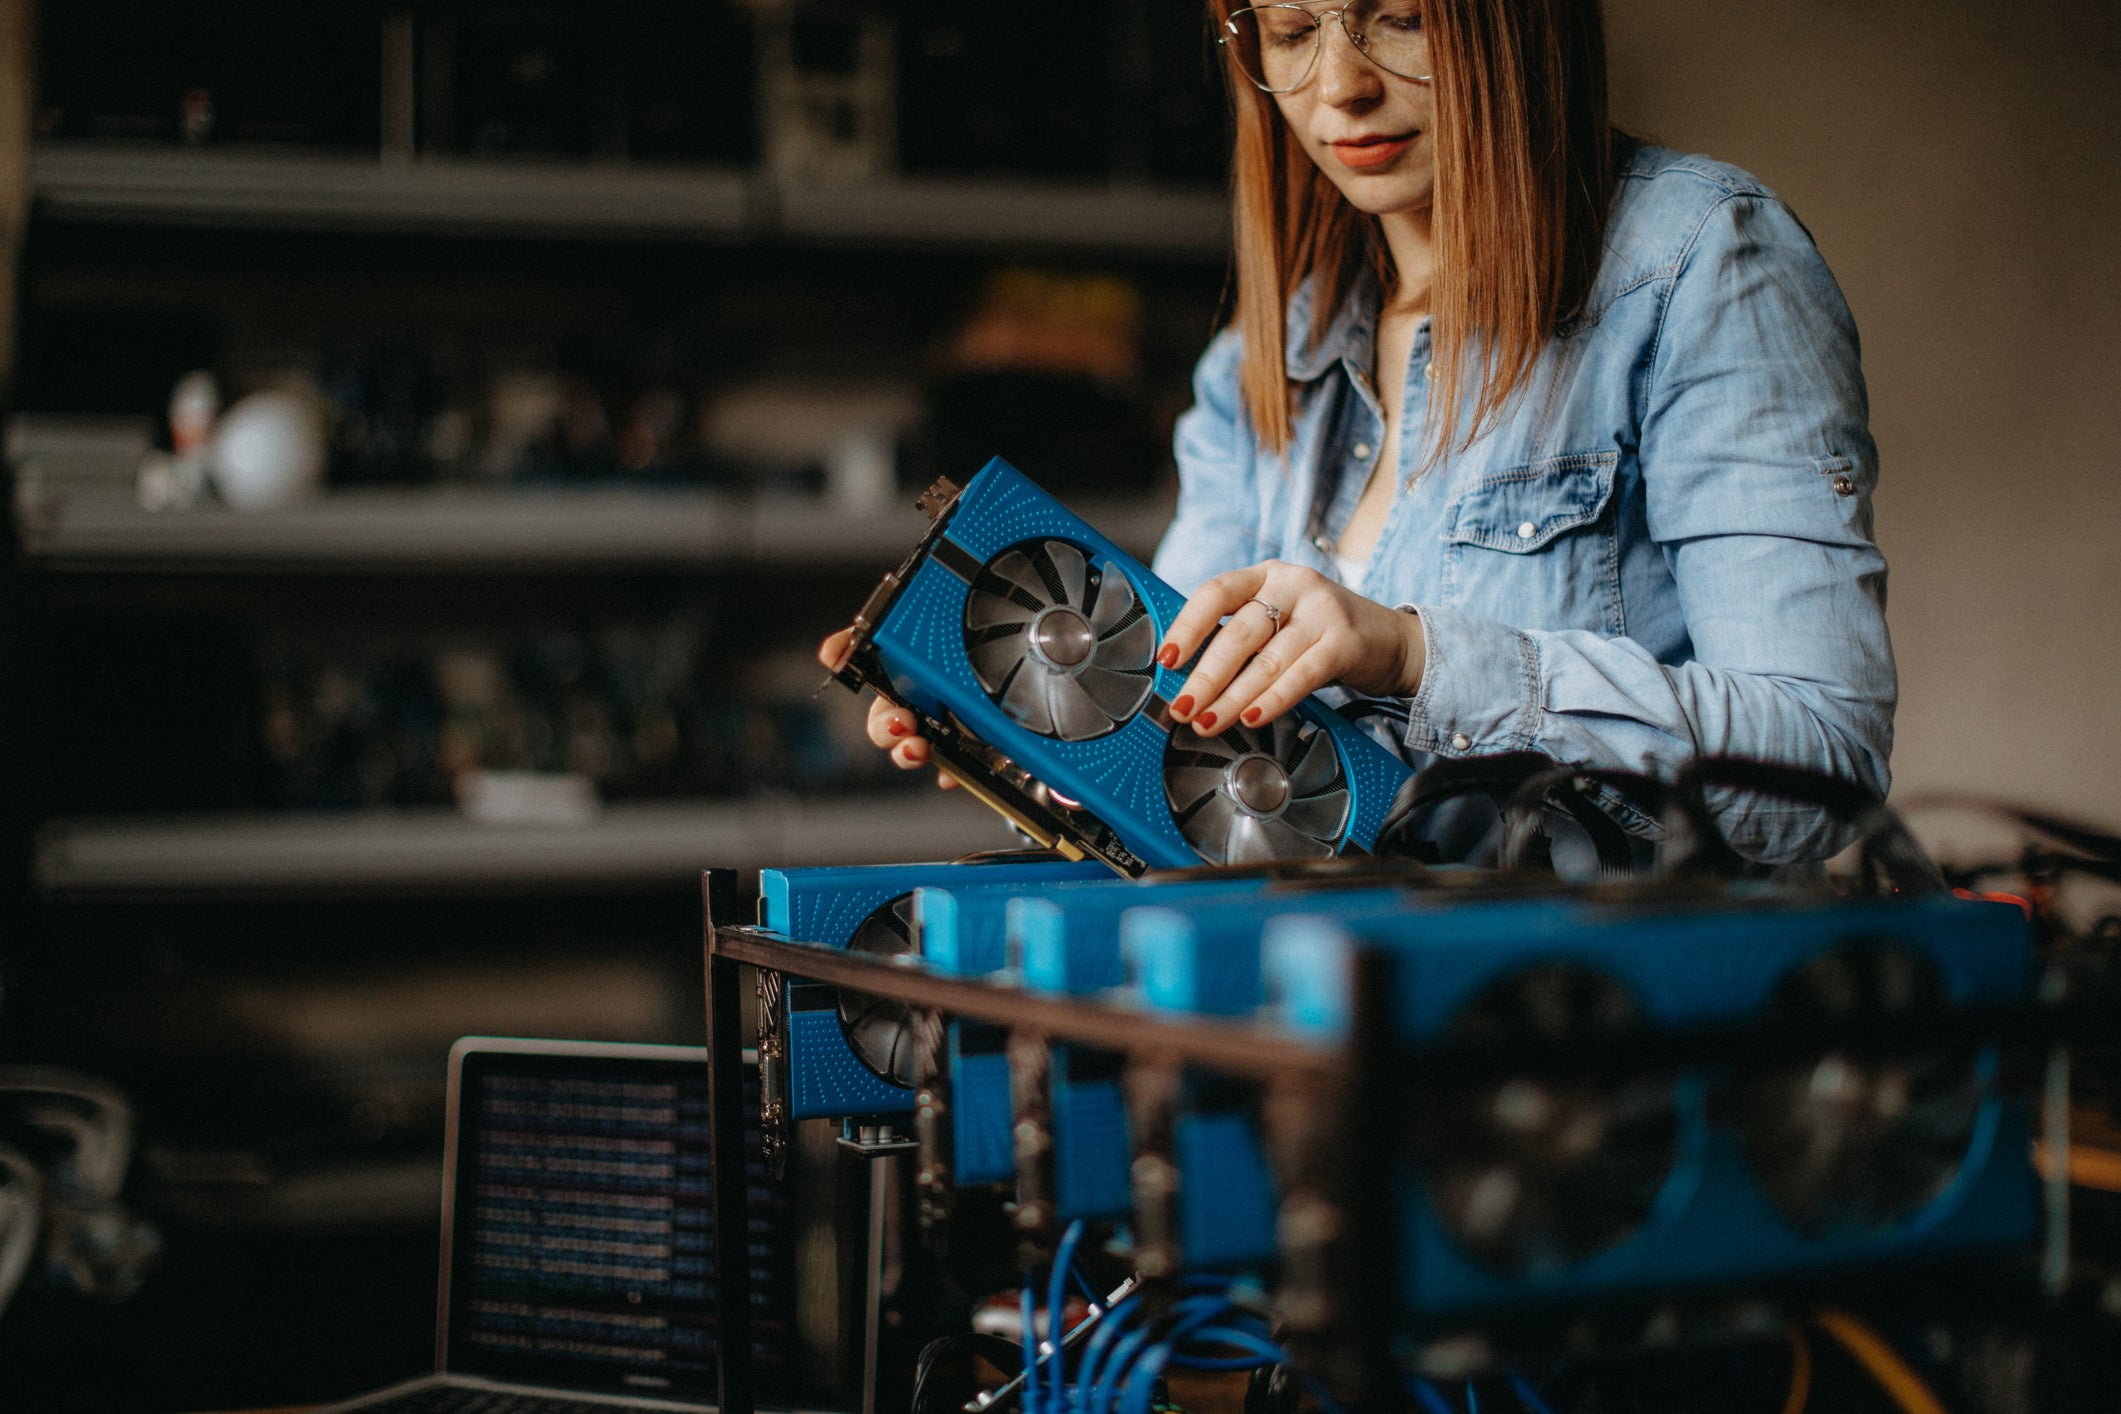 Bitcoin: What is crypto-mining and can anyone do it?